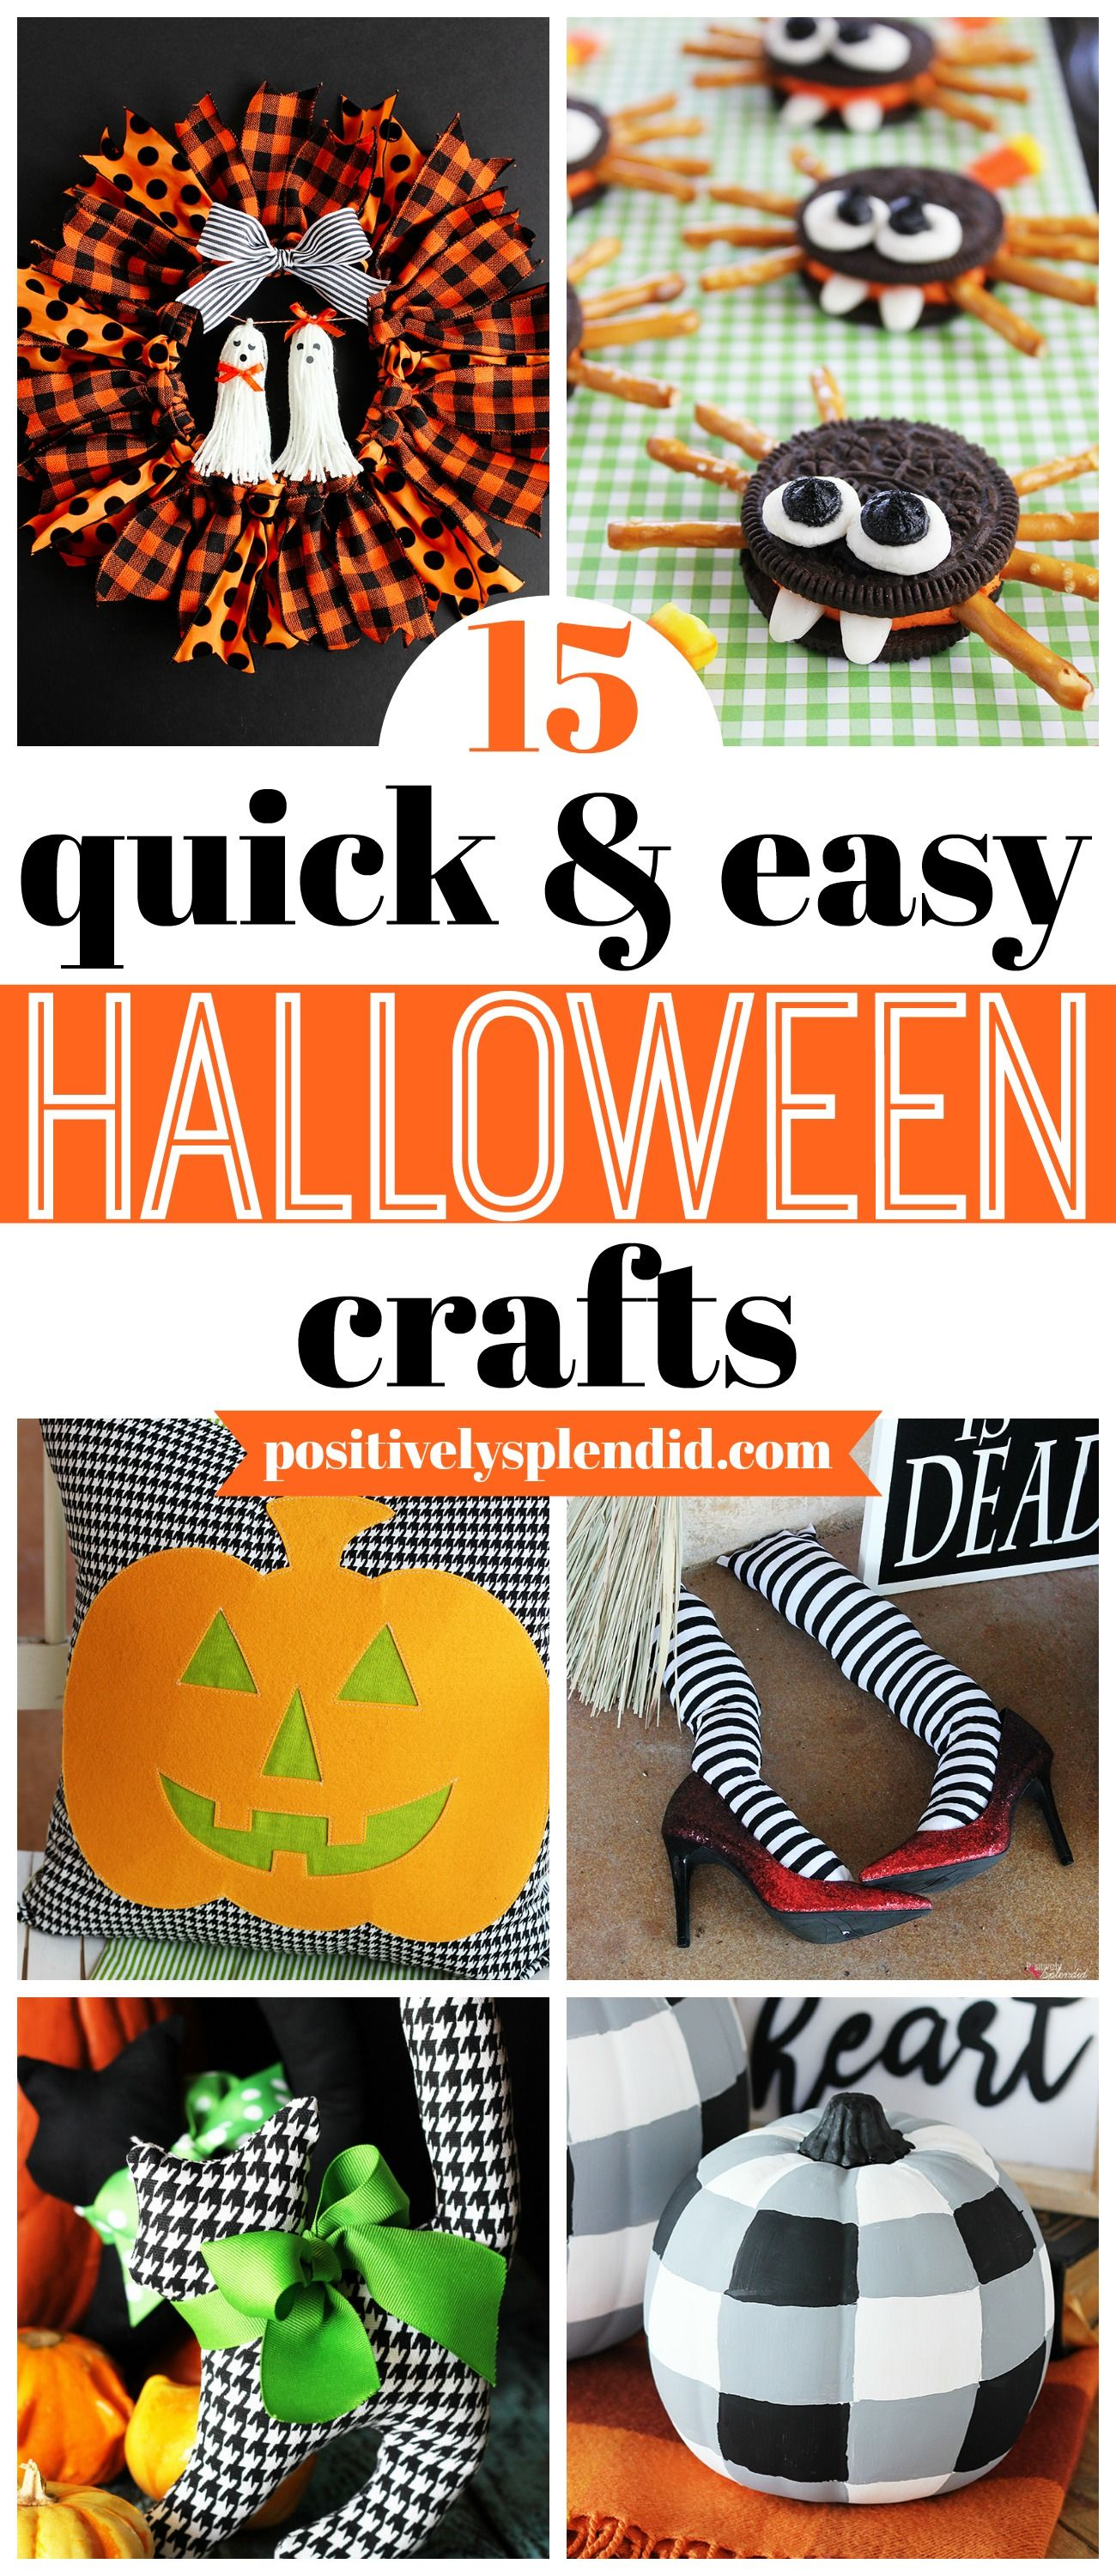 Quick Halloween Crafts to Make 15 simple and fun ideas